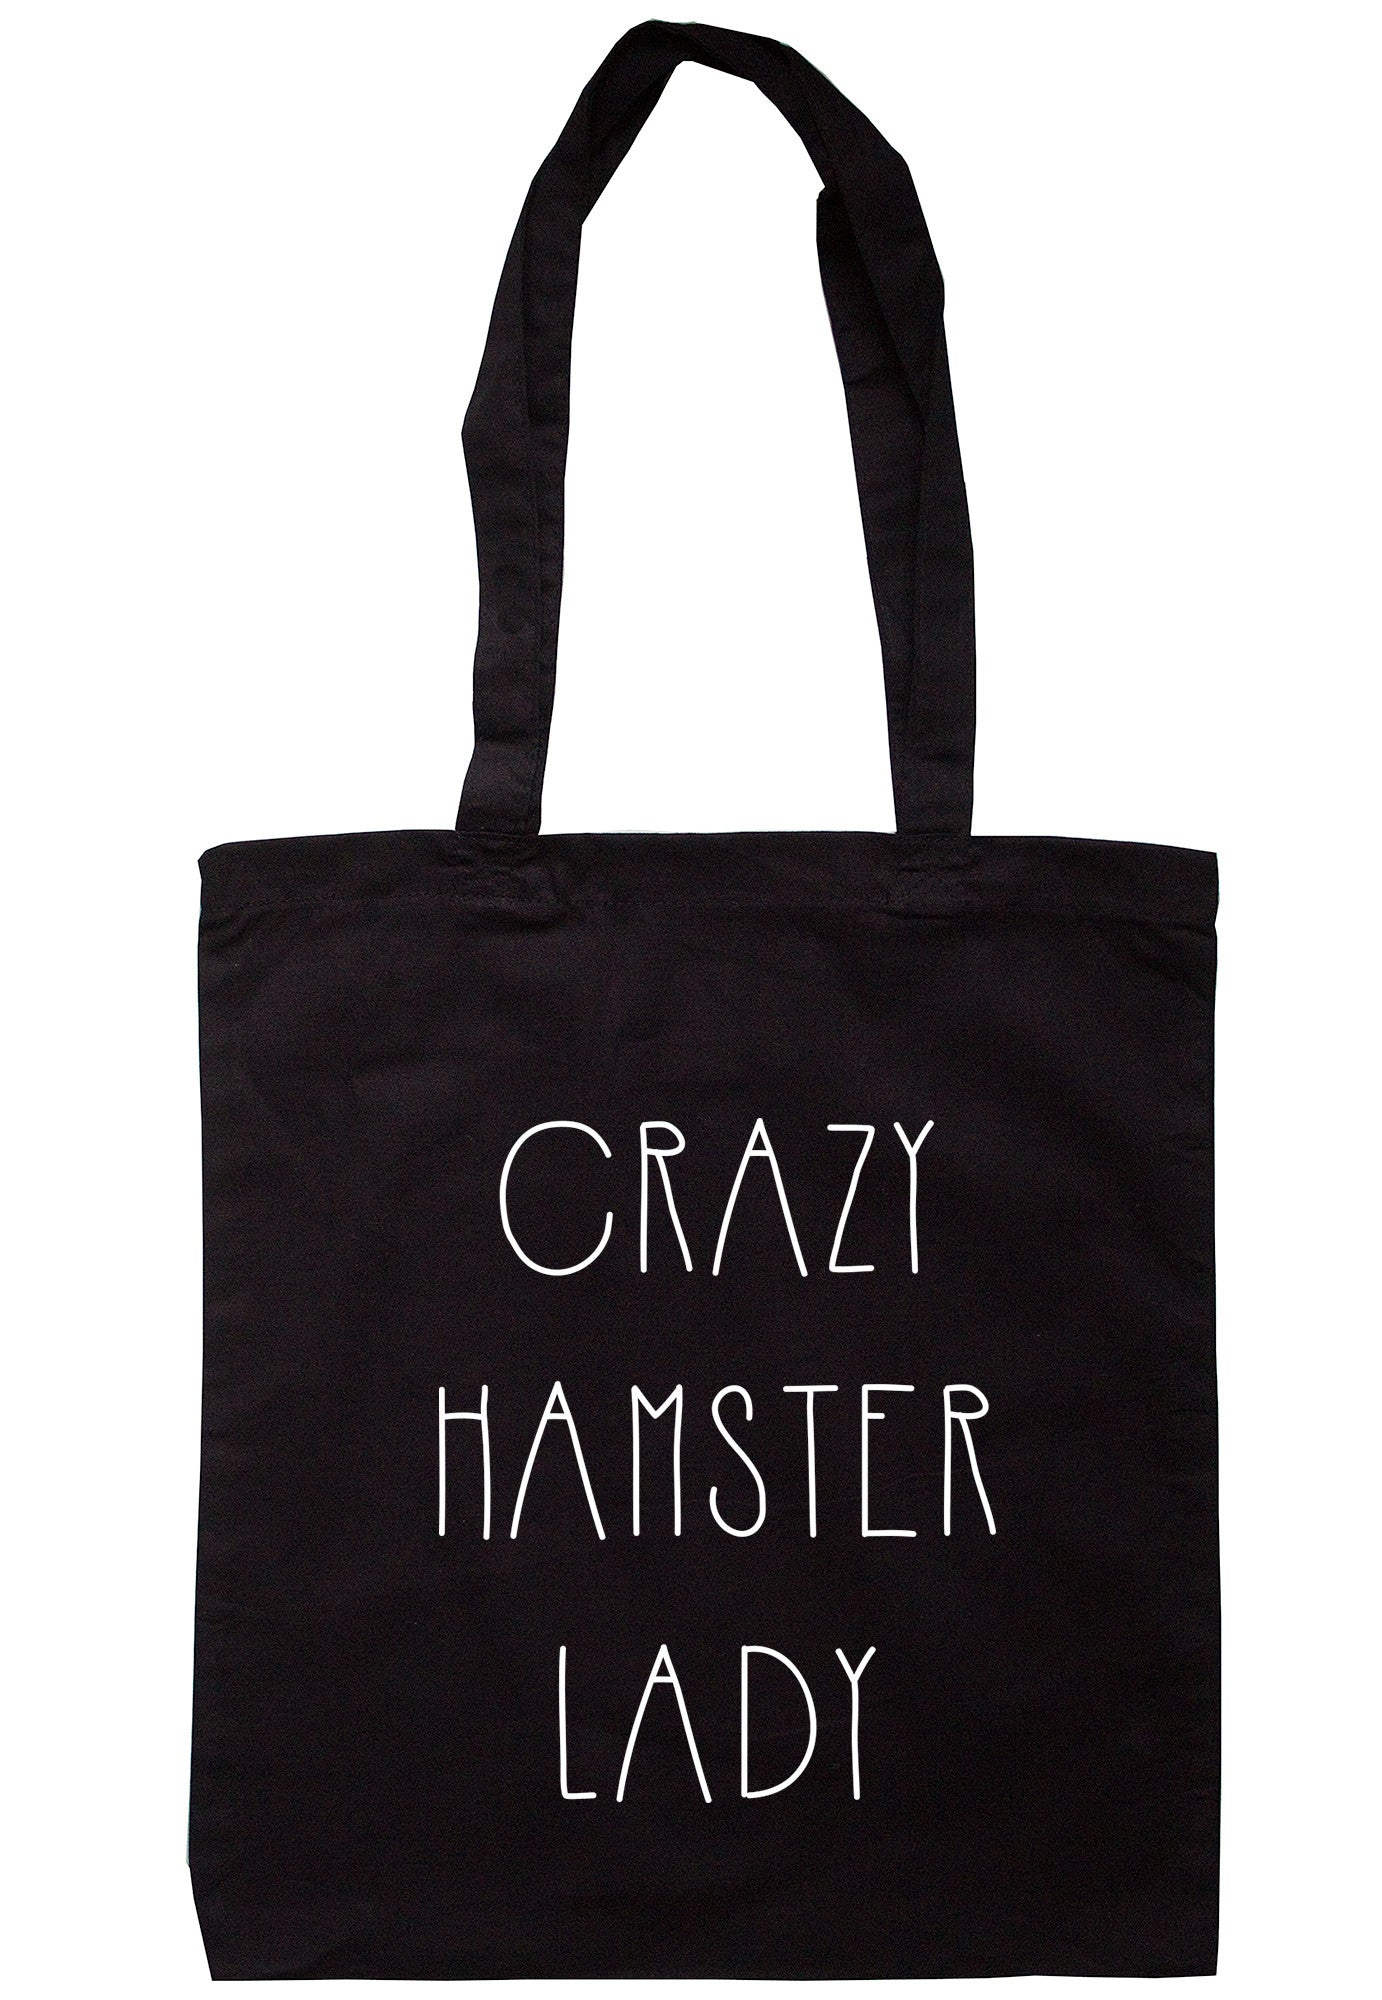 Crazy Hamster Lady Tote Bag TB0389 - Illustrated Identity Ltd.